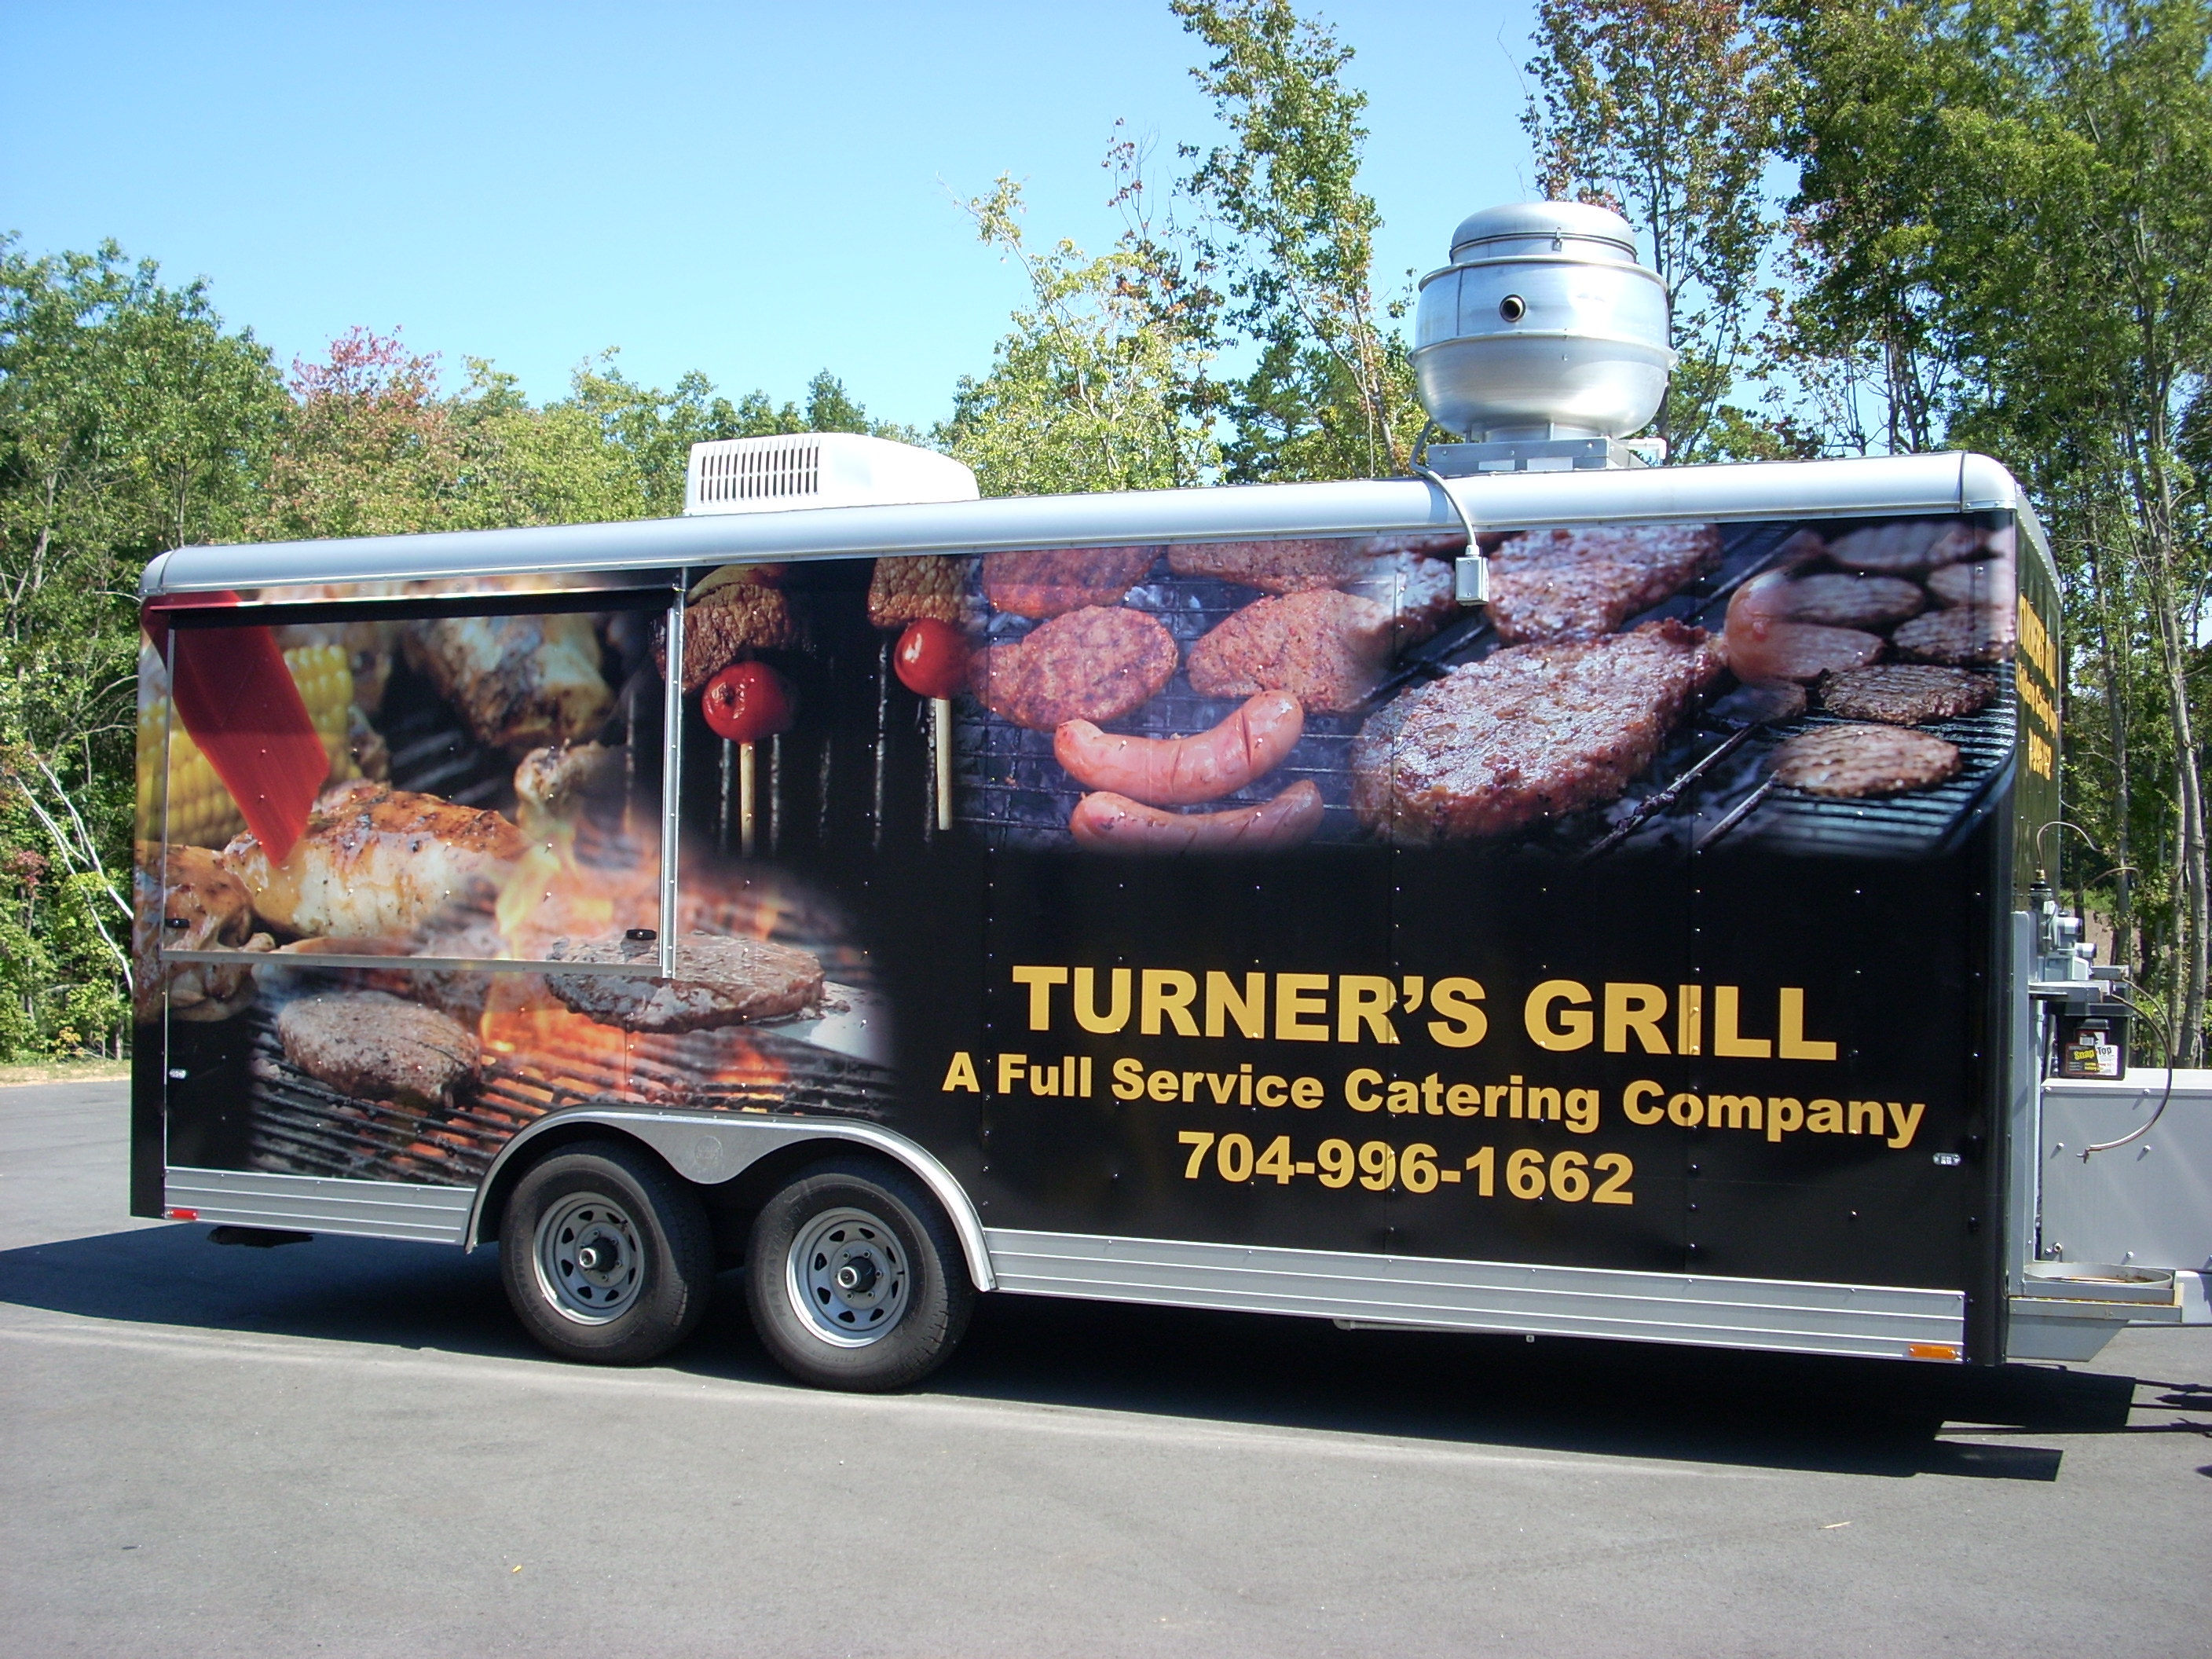 Turners Grill